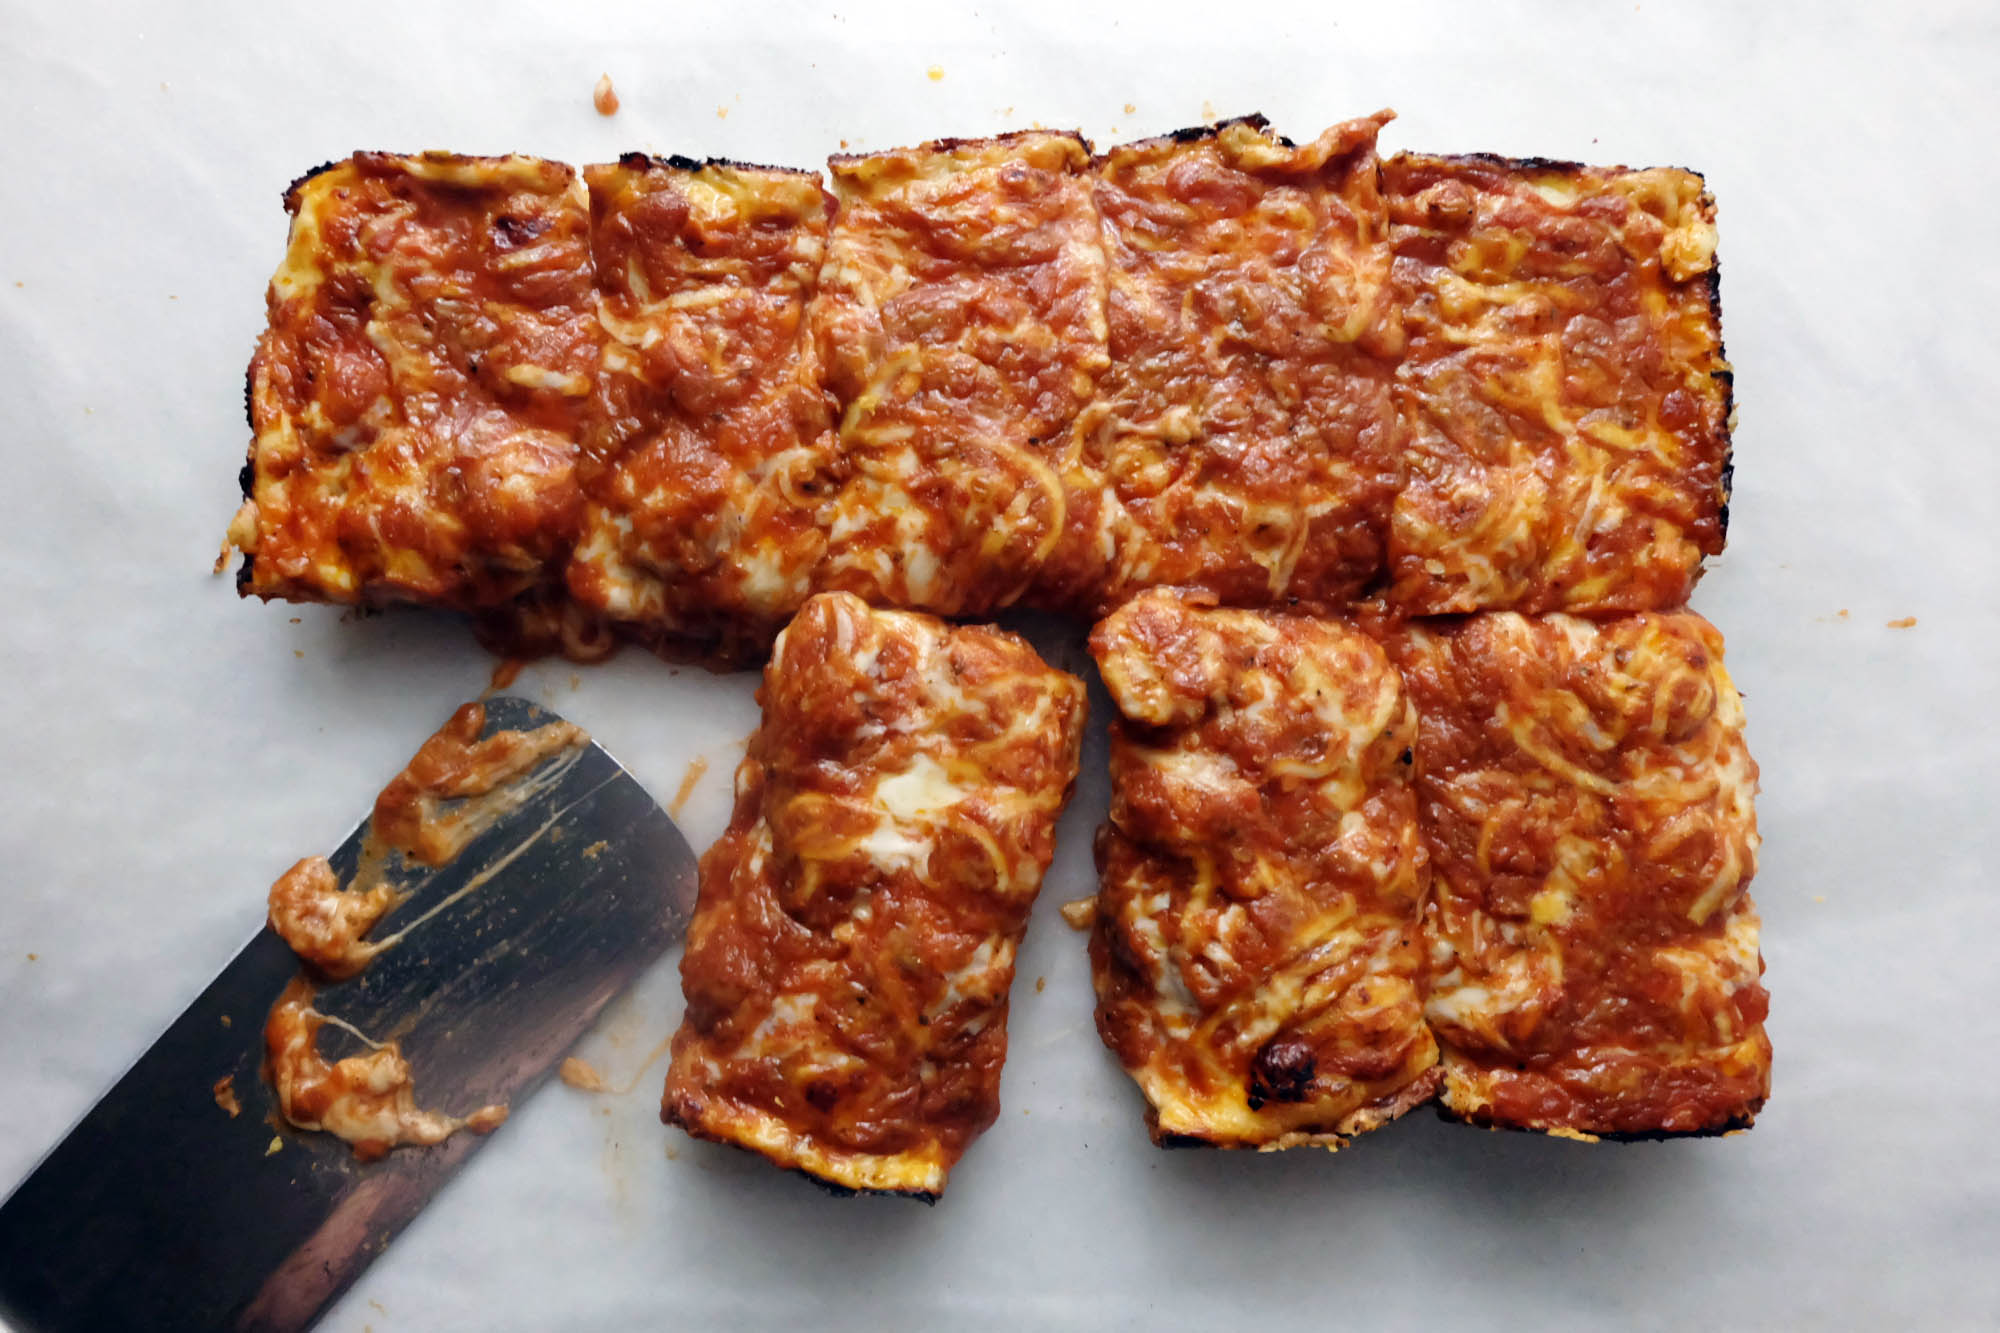 baked and sliced Detroit style pizza